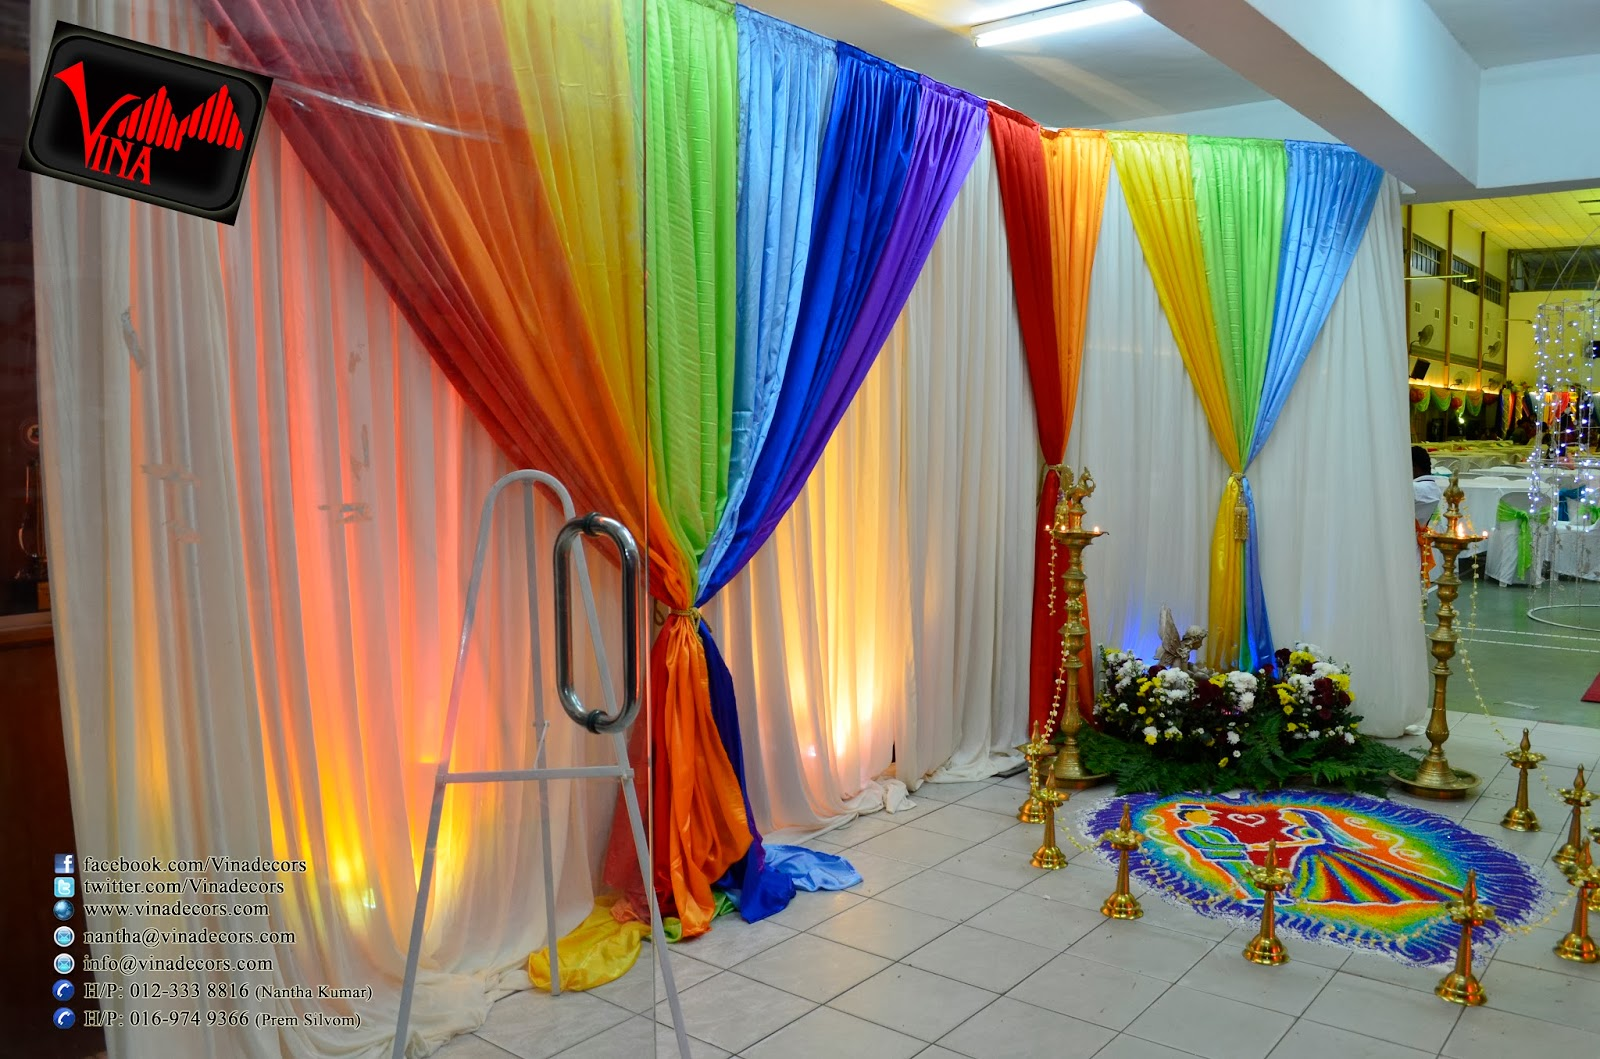 Rainbow Color Concept Wedding Dinner Decoration at SRJK (C) Batu 14, Puchong Hall (Ledchumanan Weds Nancy Nani) on 08th February  Decoration by Vina Canopy & Decor